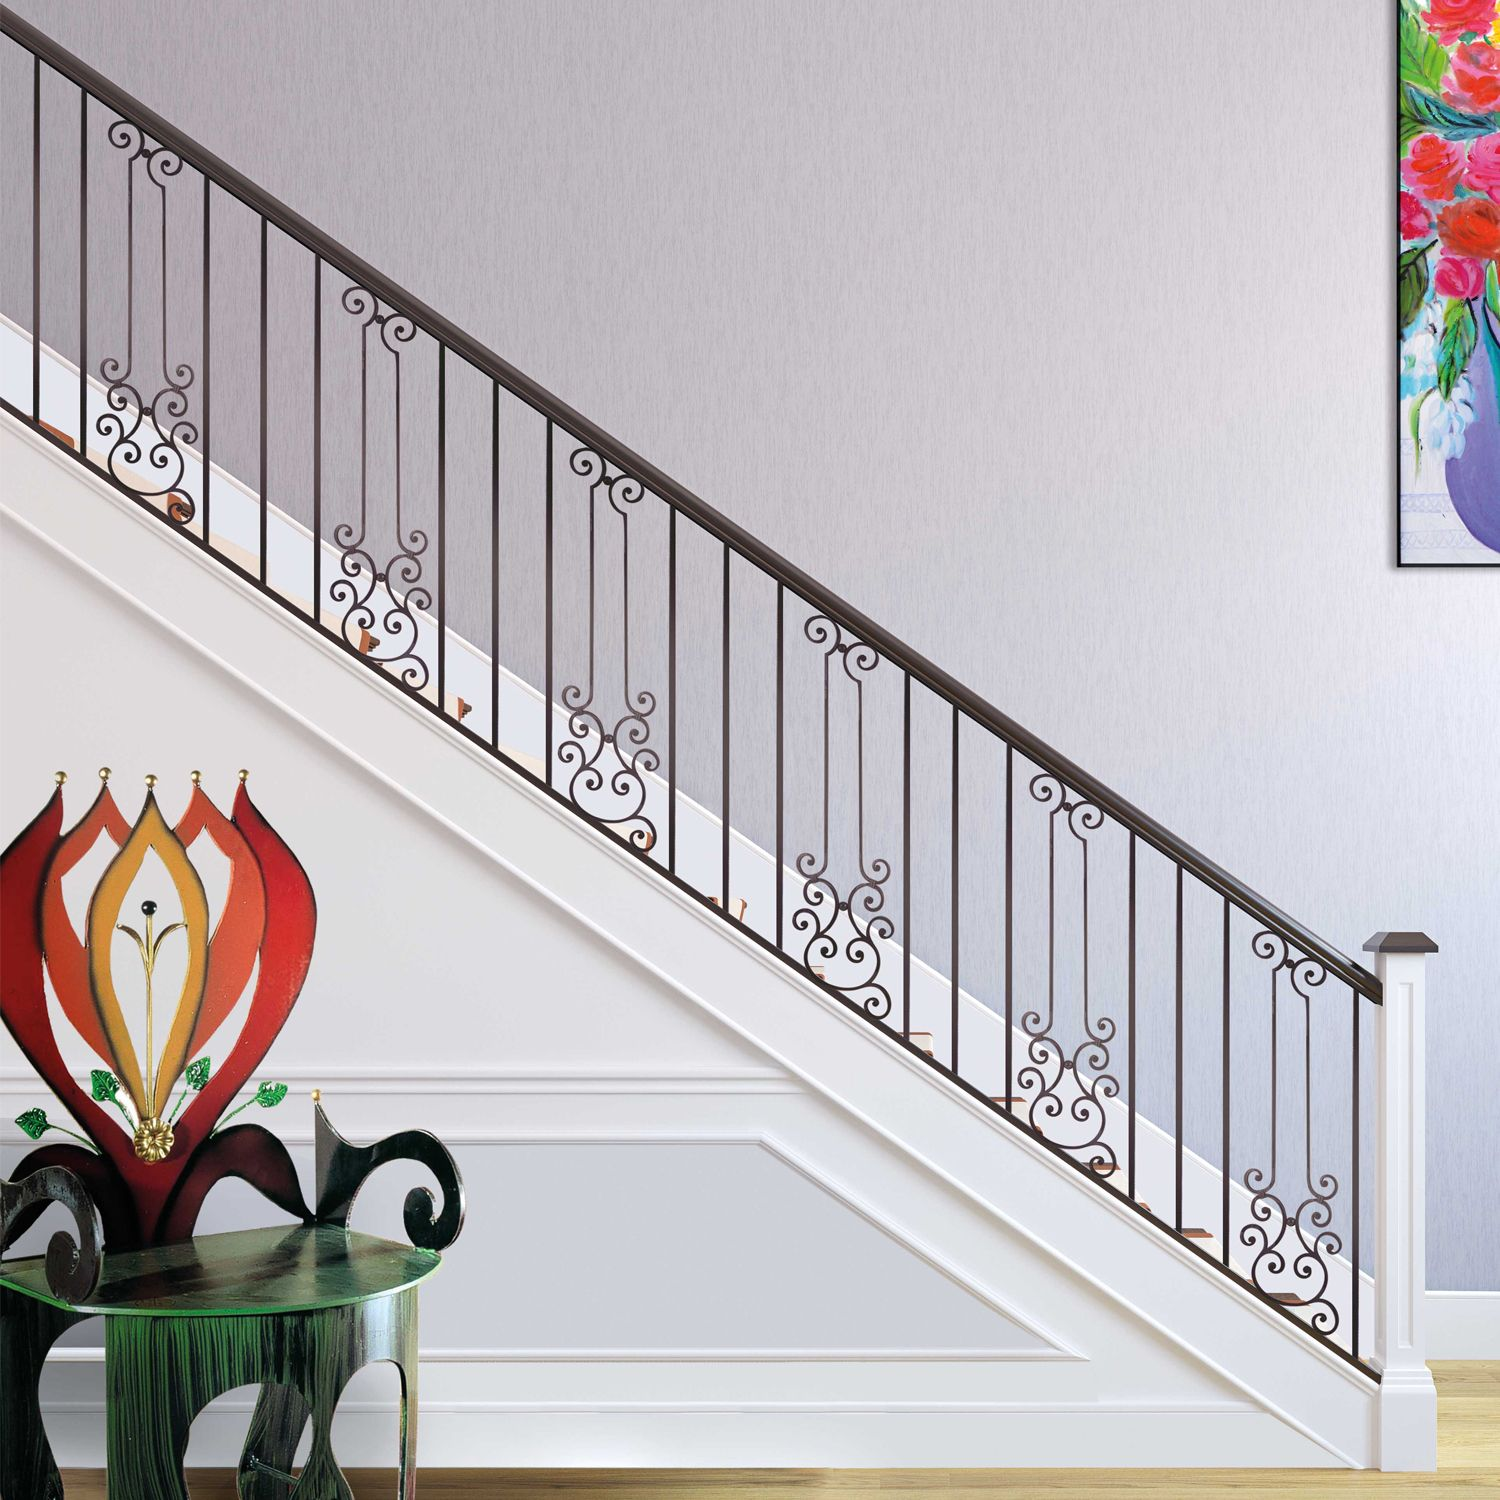 Our #WroughtIron Gonzato Design #panels give #stairs and # ...